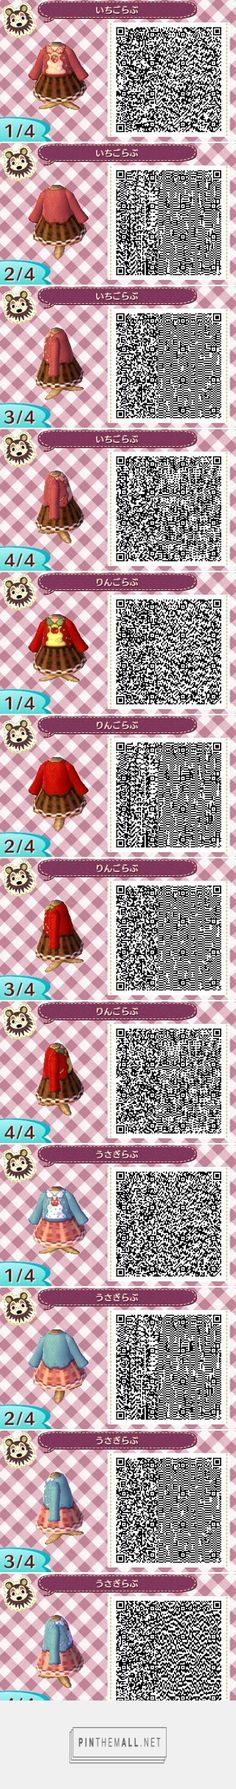 Strawberries and apples and a cat and a rabbit! Cardigan + skirt